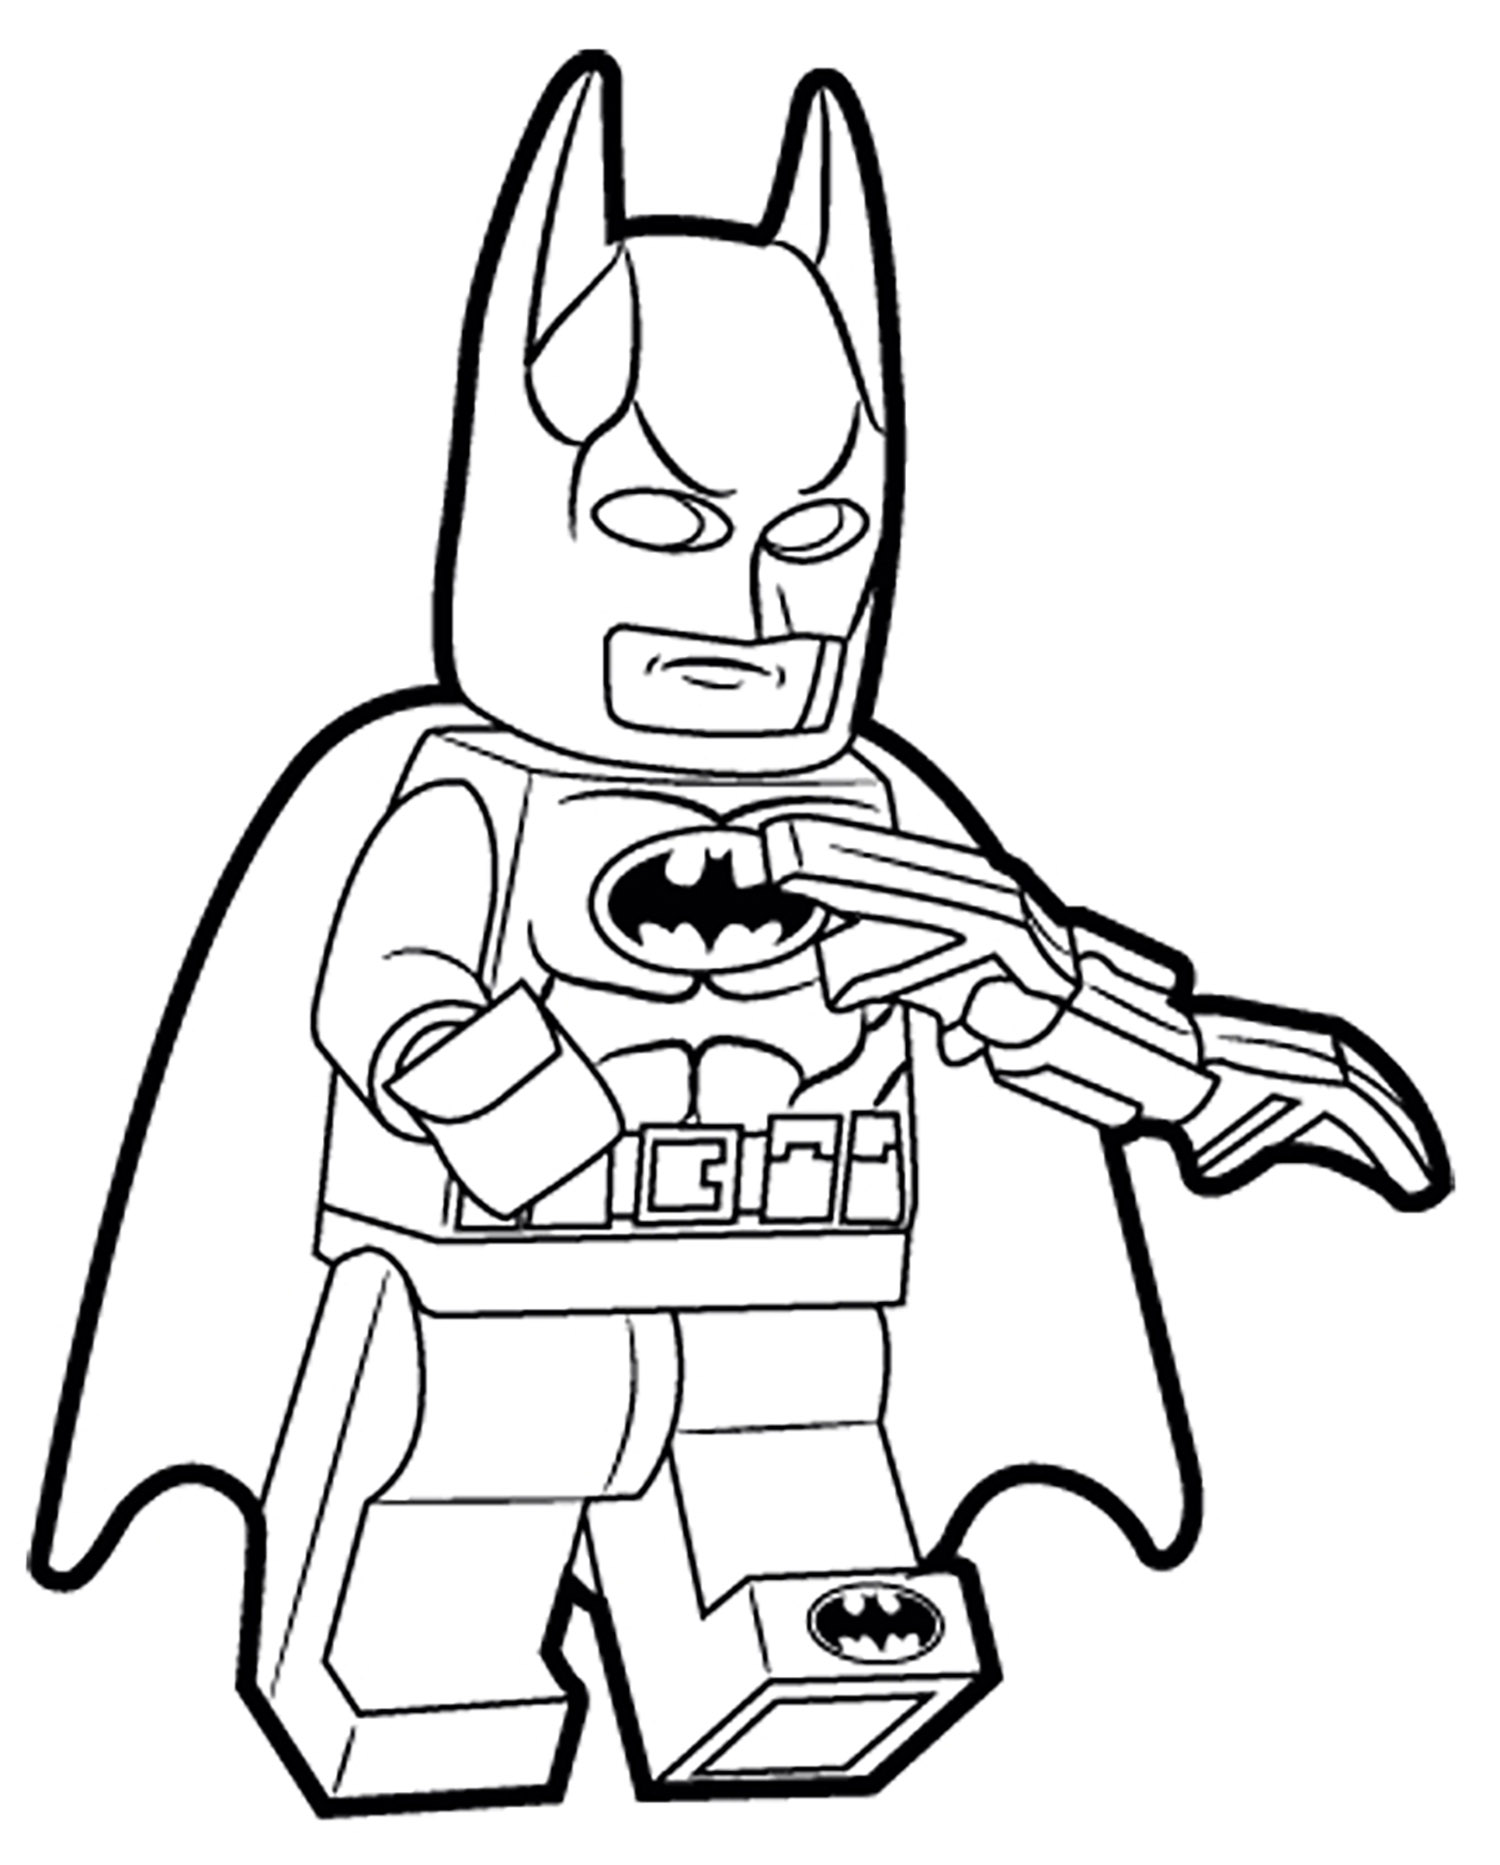 Enfant lego batman 1 coloriage lego batman coloriages - Dessin lego a colorier ...